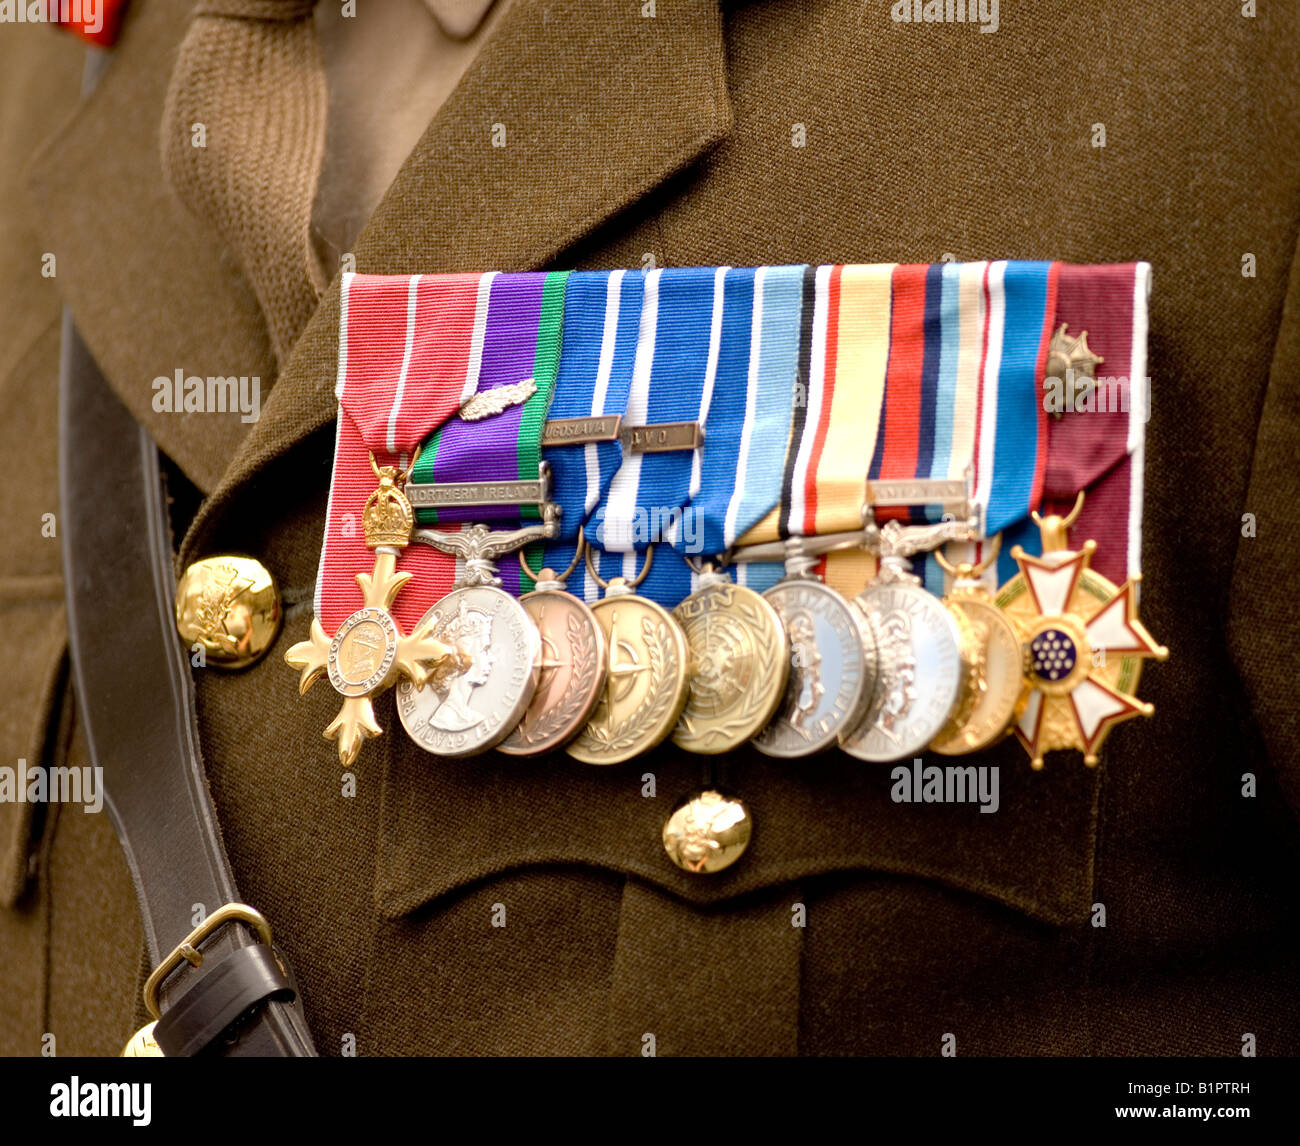 a row of campaign medals including the george cross pinned